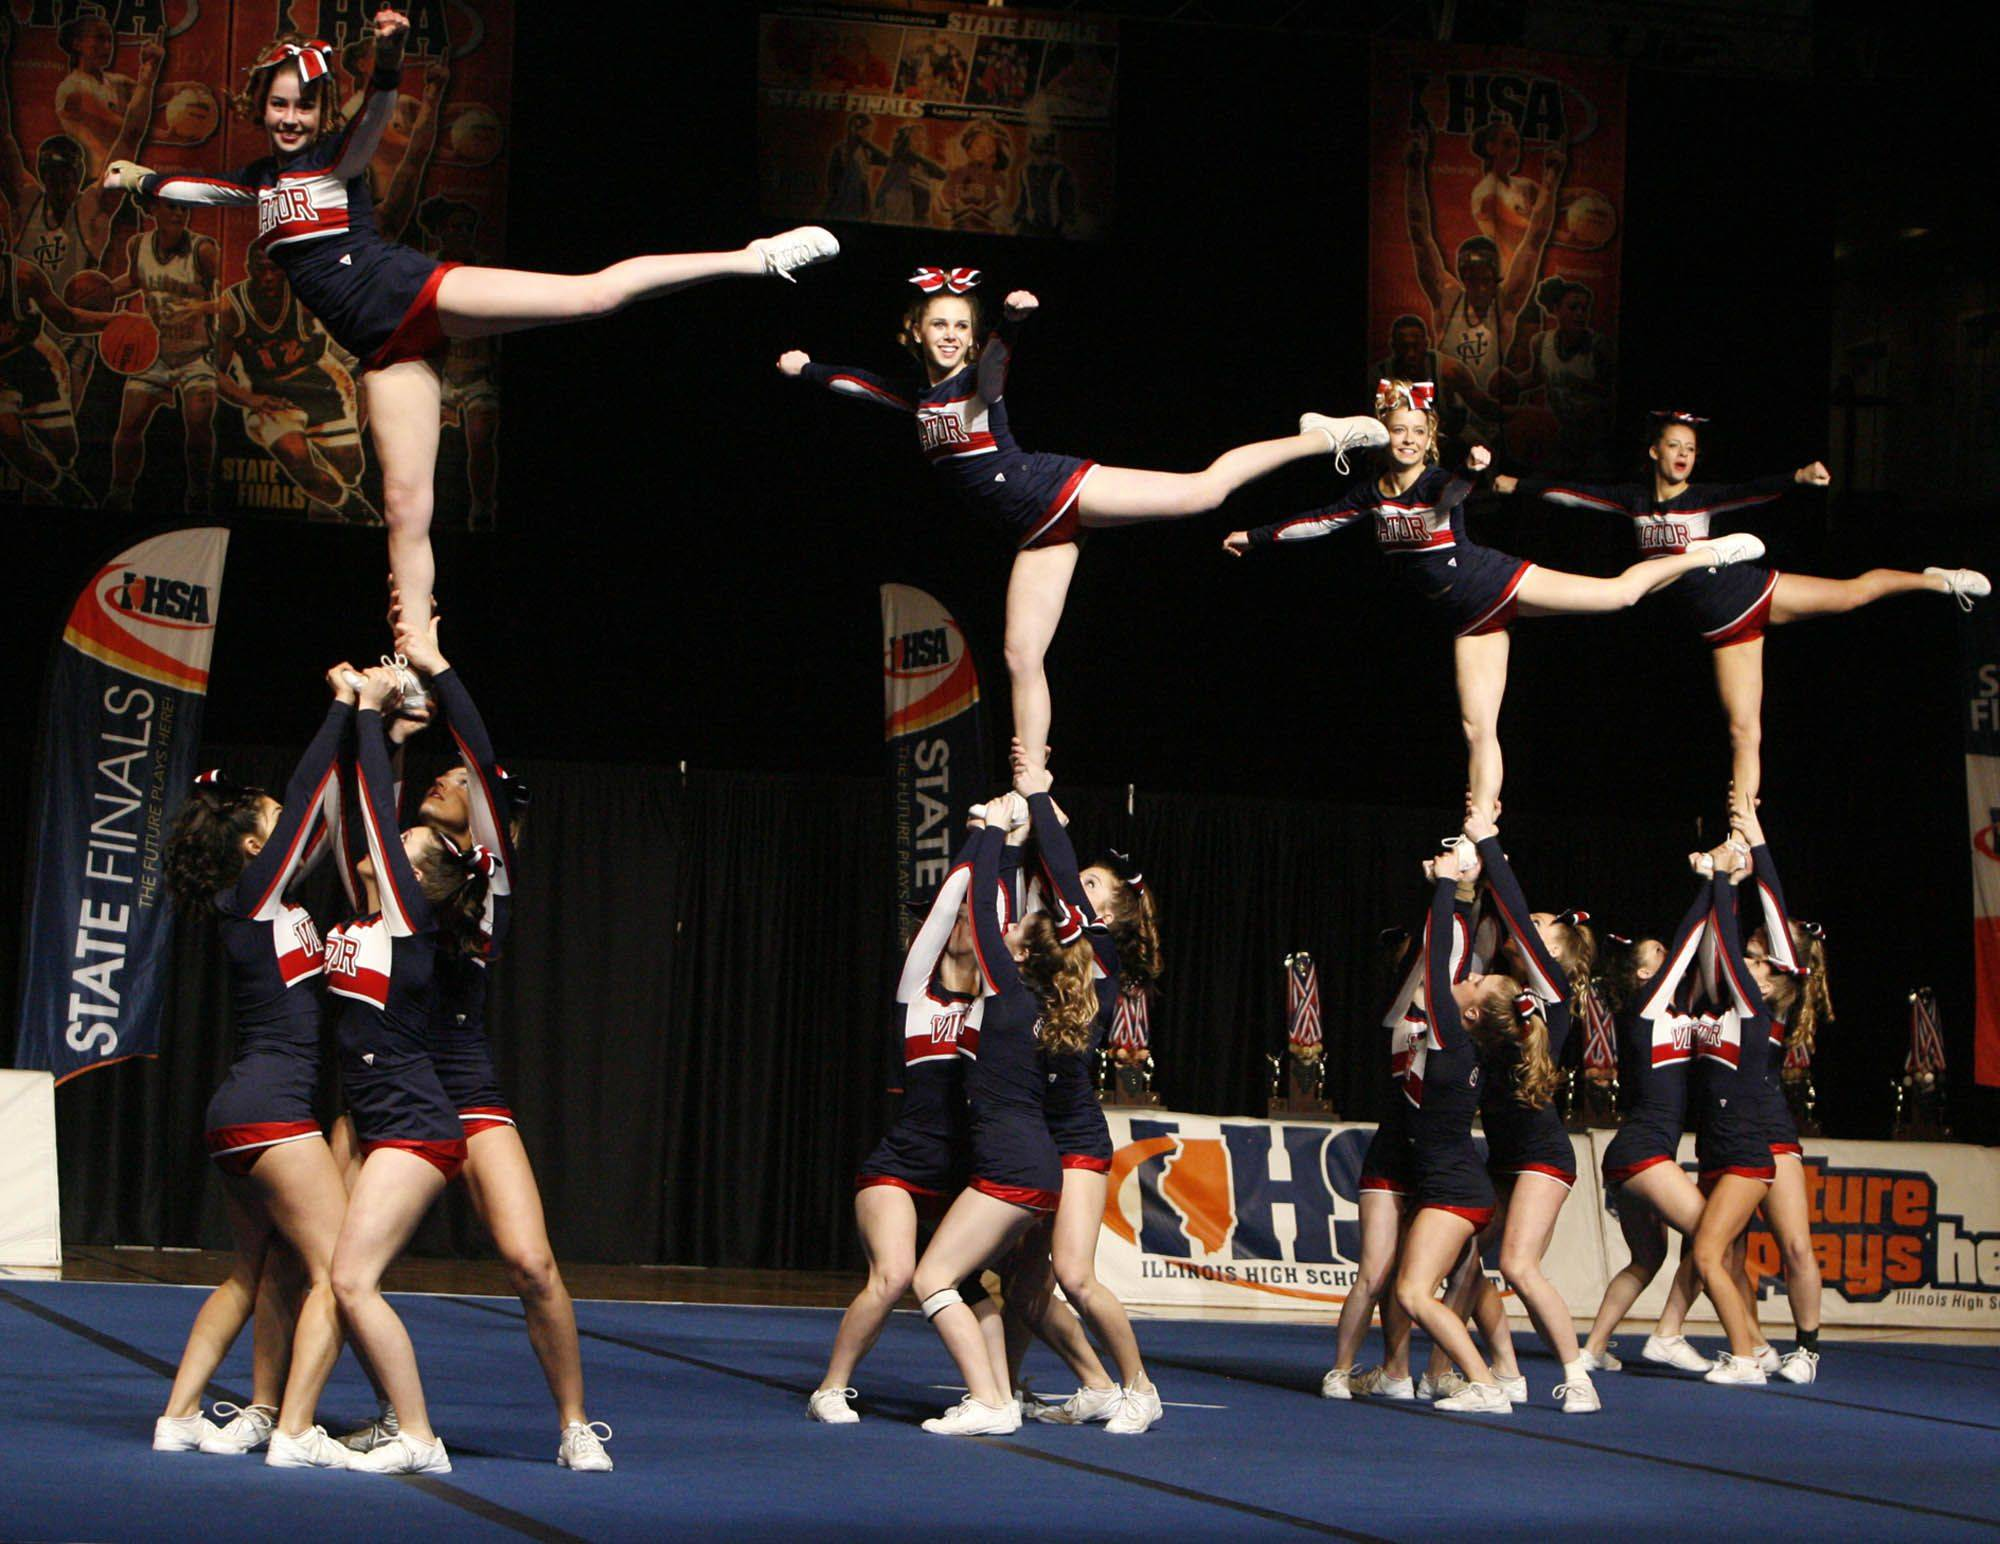 St. Viator competes in the medium team category at IHSA cheerleading state finals at U.S. Cellular Coliseum in Bloomington on Saturday, February 4th.